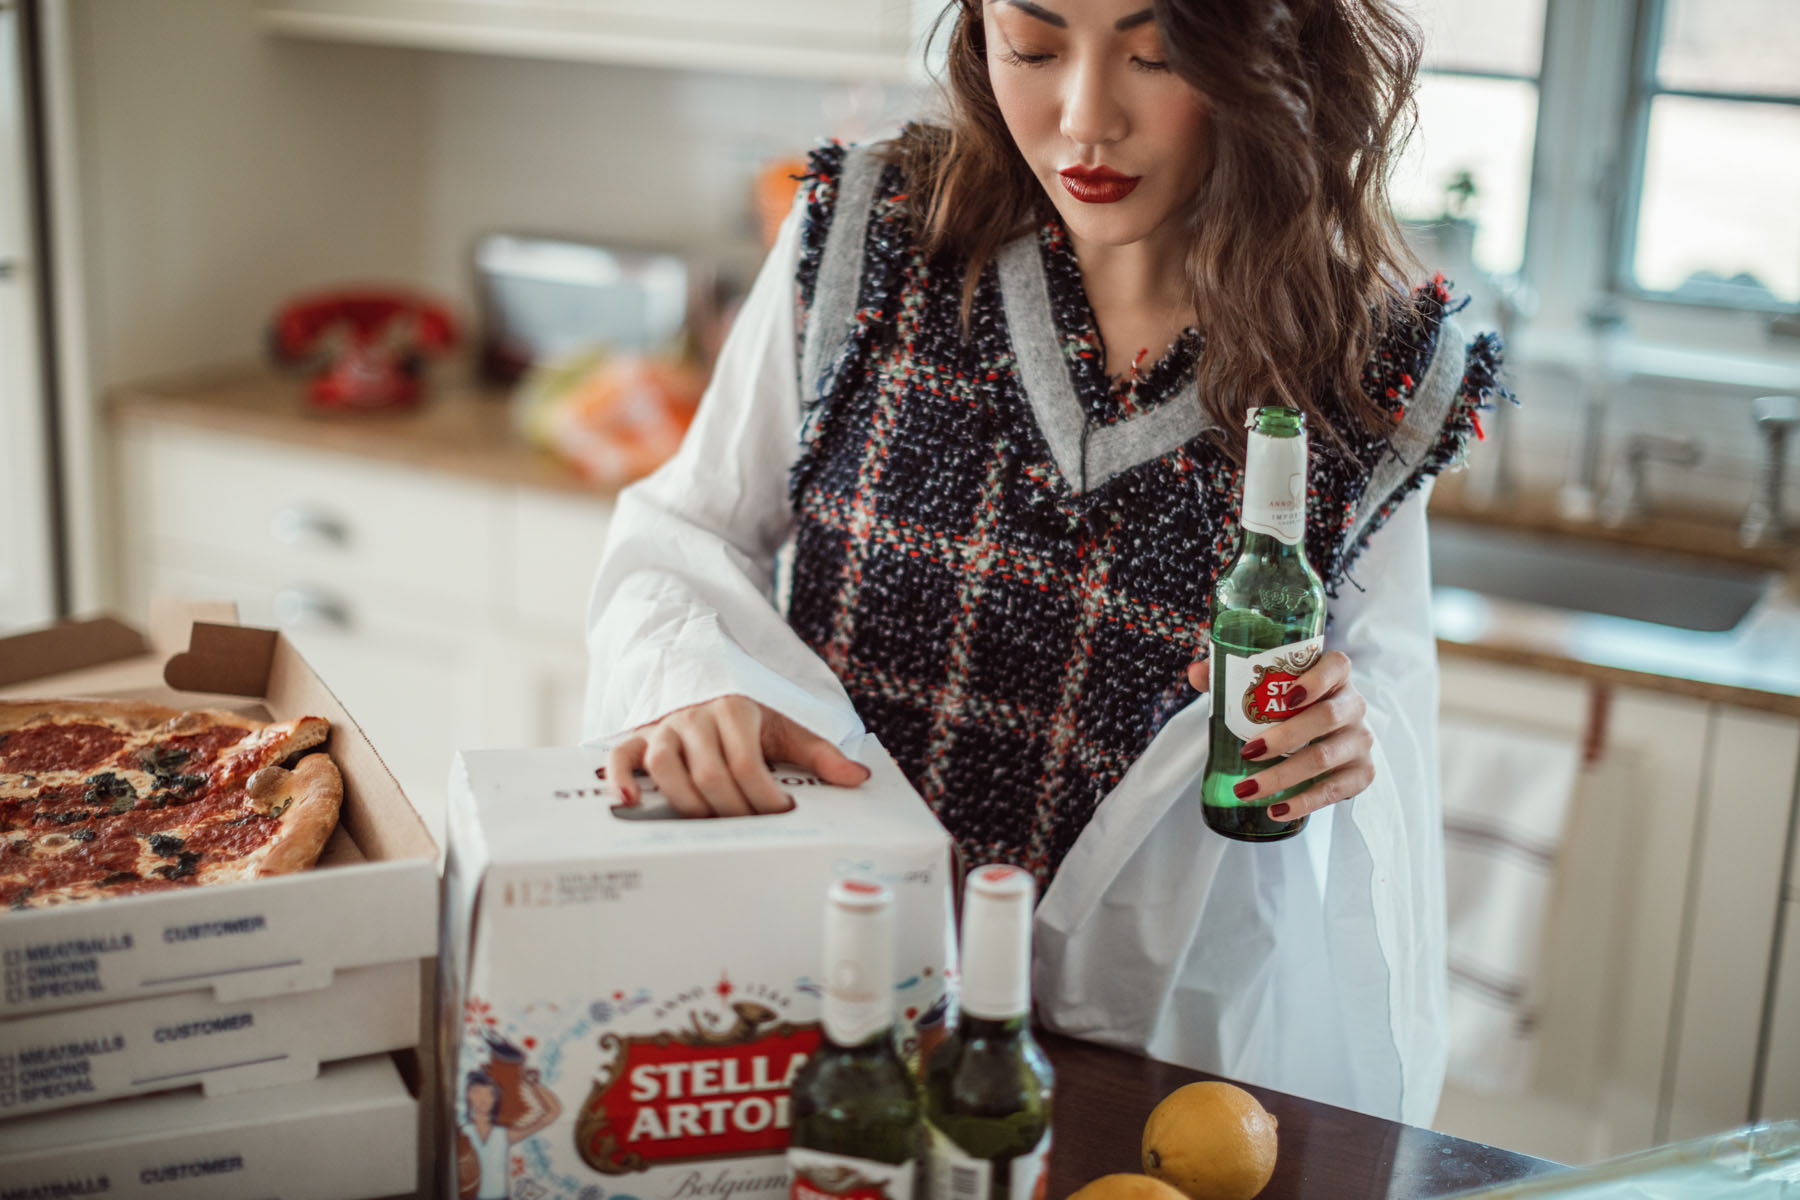 How to Throw a Super Bowl Party That Matters // Notjessfashion // Stella Artois, Super Bowl Party, fashion blogger, new york fashion blogger, jessica wang, pizza and beer